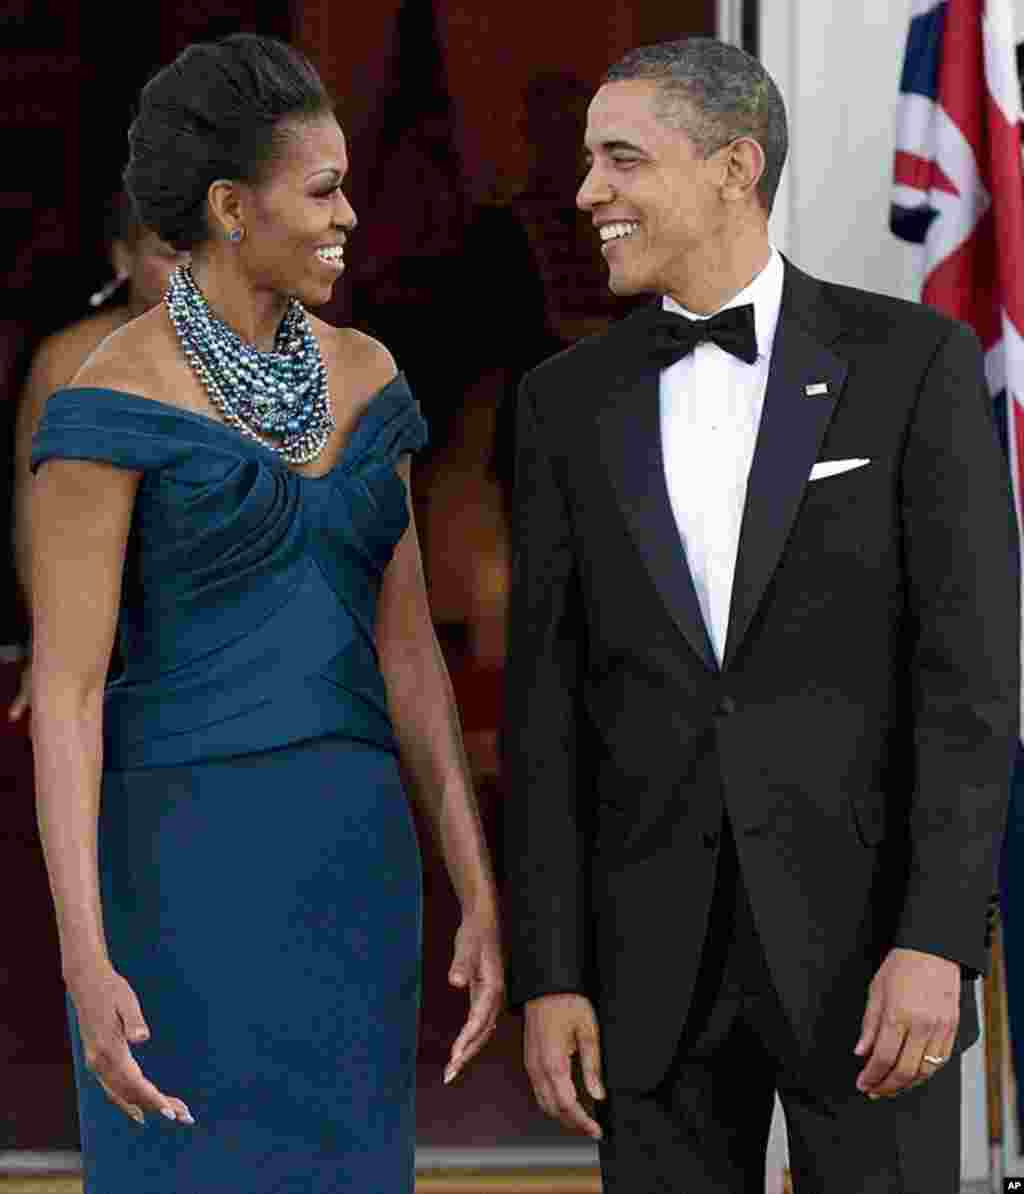 U.S. President Barack Obama and first lady Michelle Obama await the arrival of Britain's Prime Minister David Cameron and his wife, Samantha, for an official dinner in their honor at the White House on March 14, 2012. (Reuters)